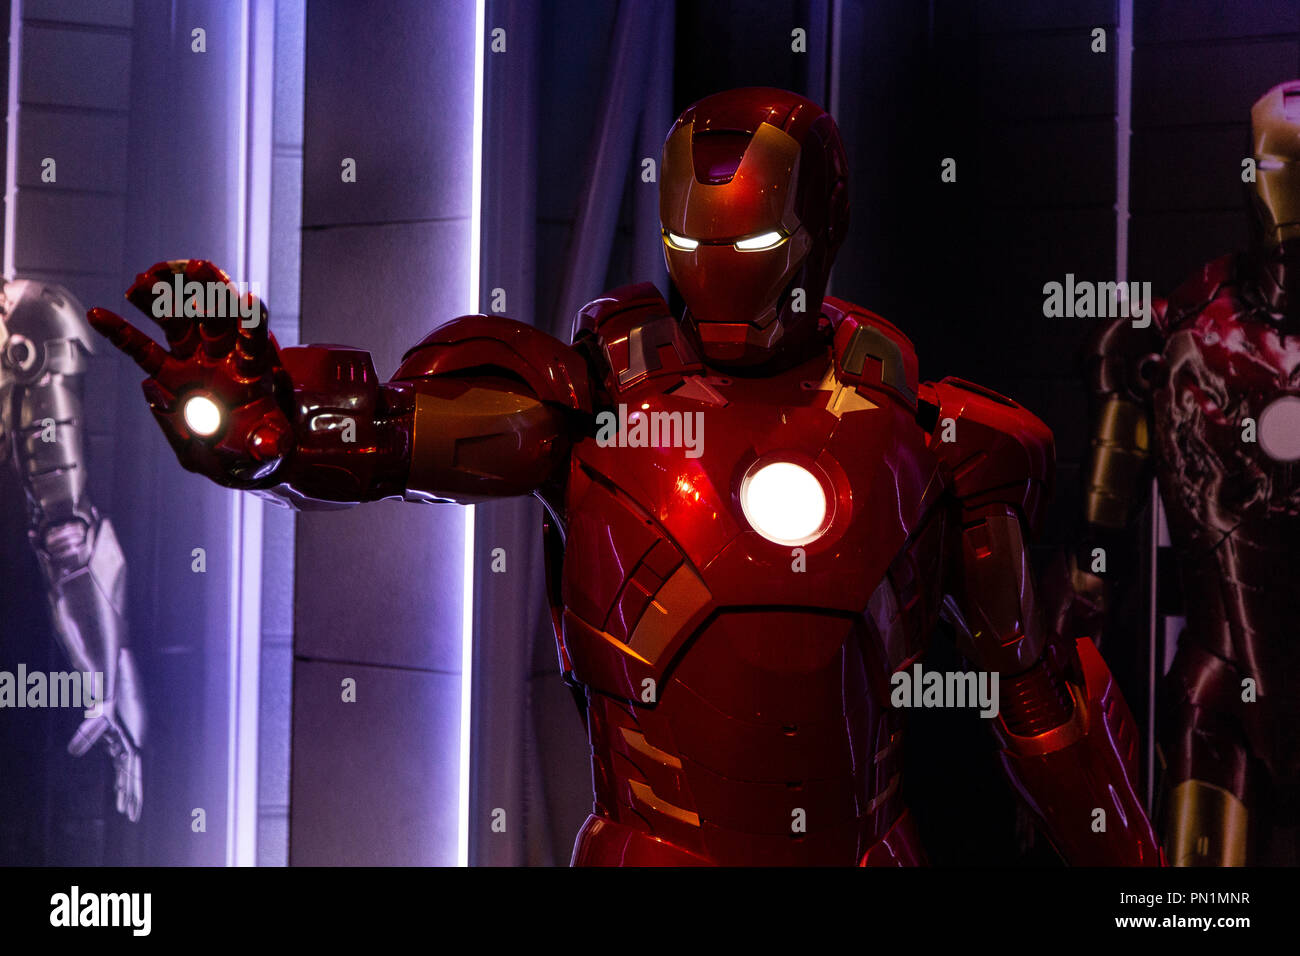 Wax figure of Tony Stark the Iron Man from Marvel comics in Madame Tussauds Wax museum in Amsterdam, Netherlands - Stock Image